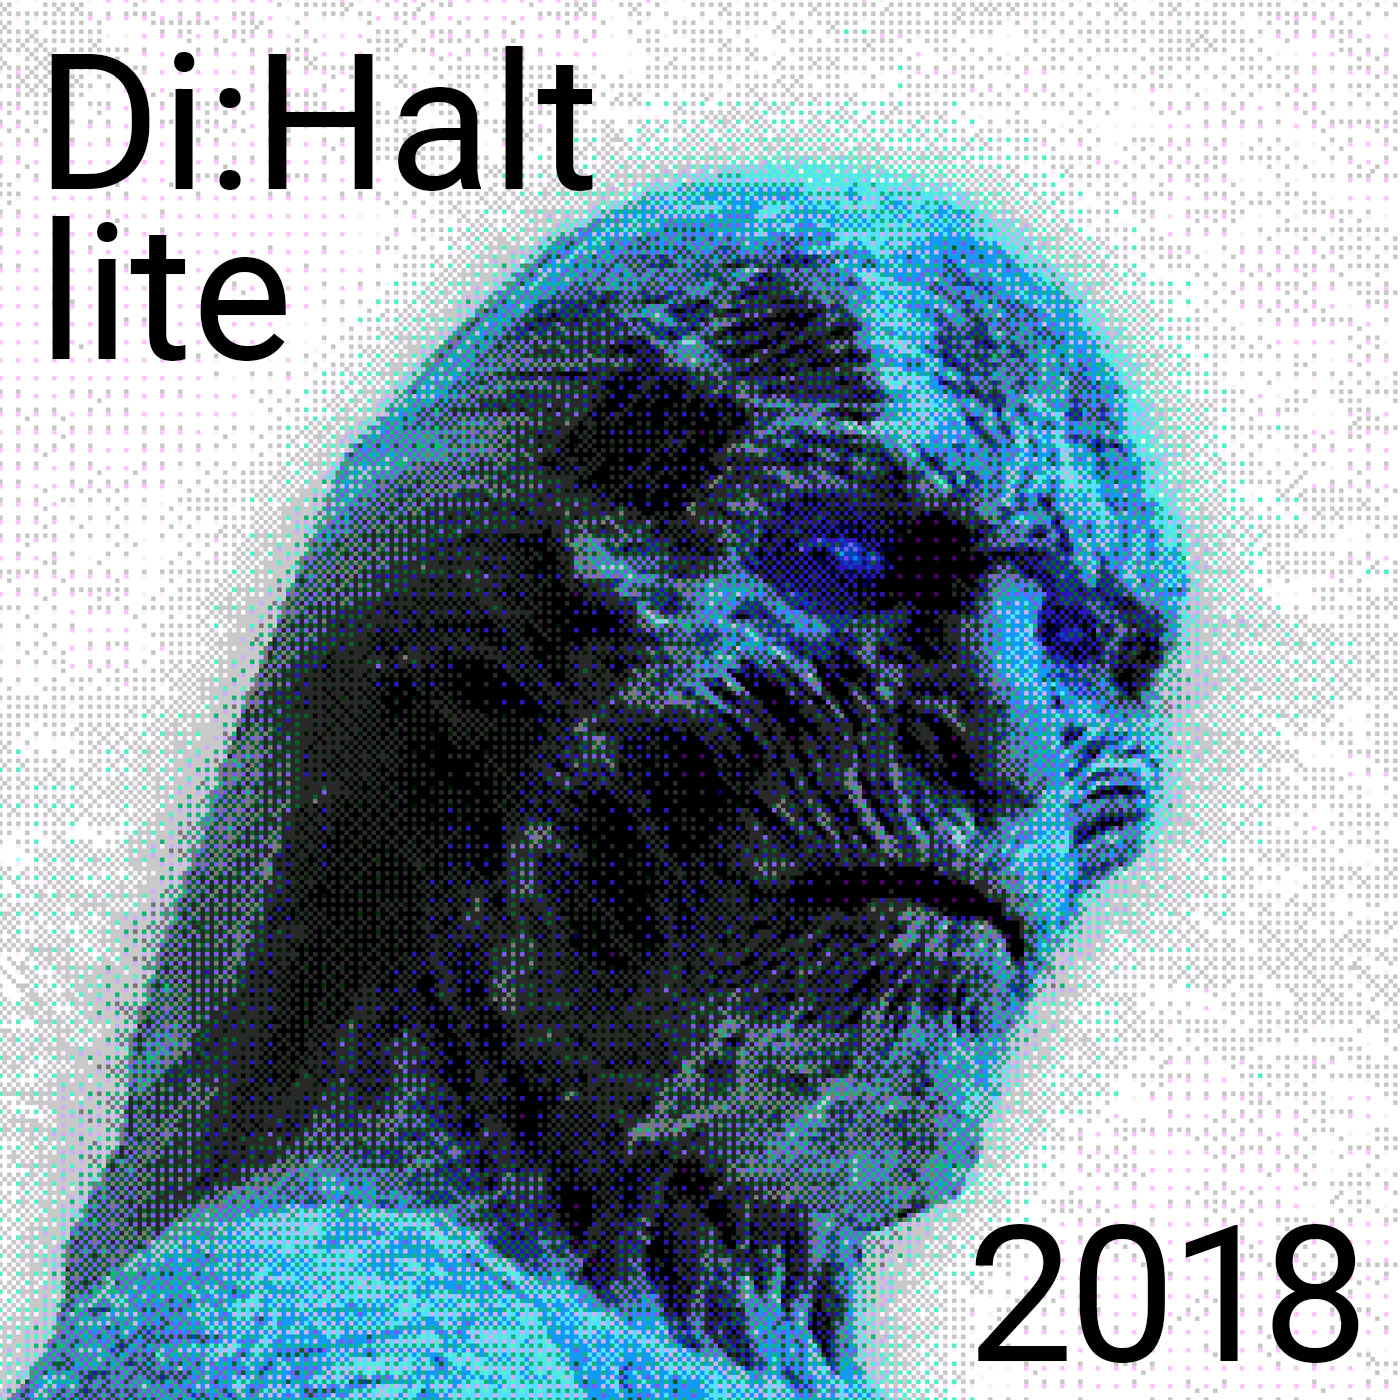 zx chip podcast ep.35 — DiHalt lite 2018